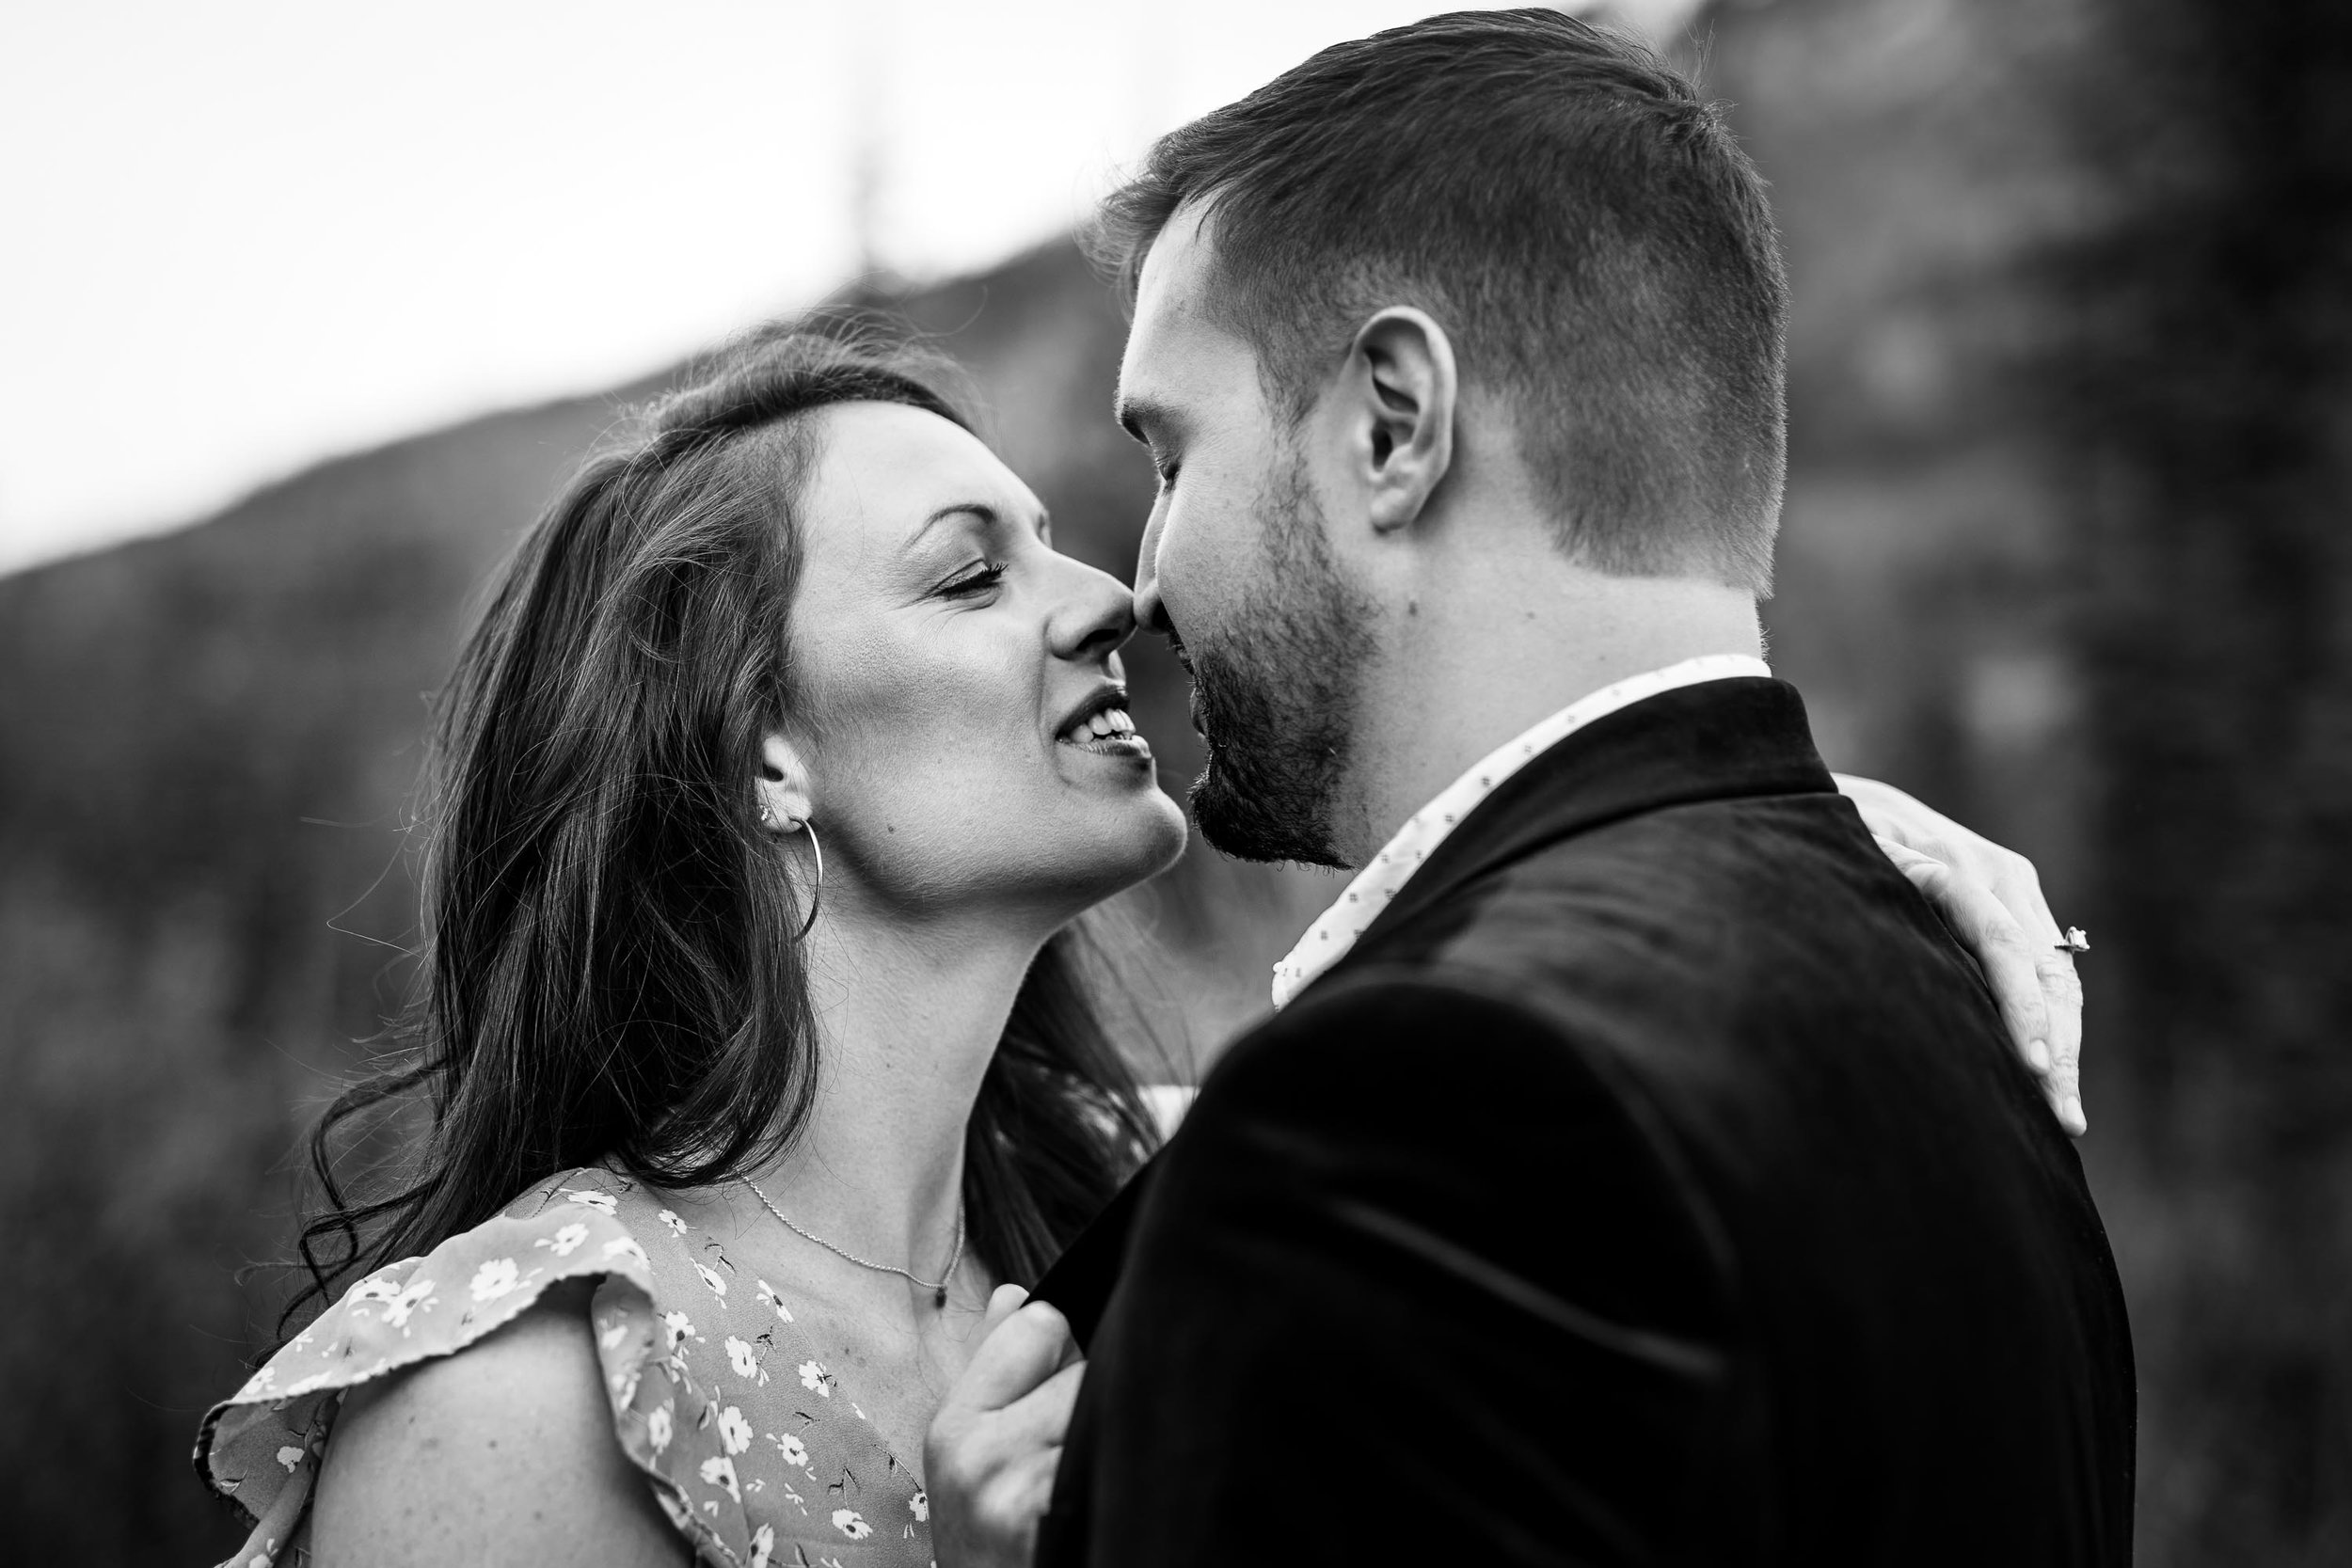 Colorado_Ghost_Town_Engagement_Session-4.jpg